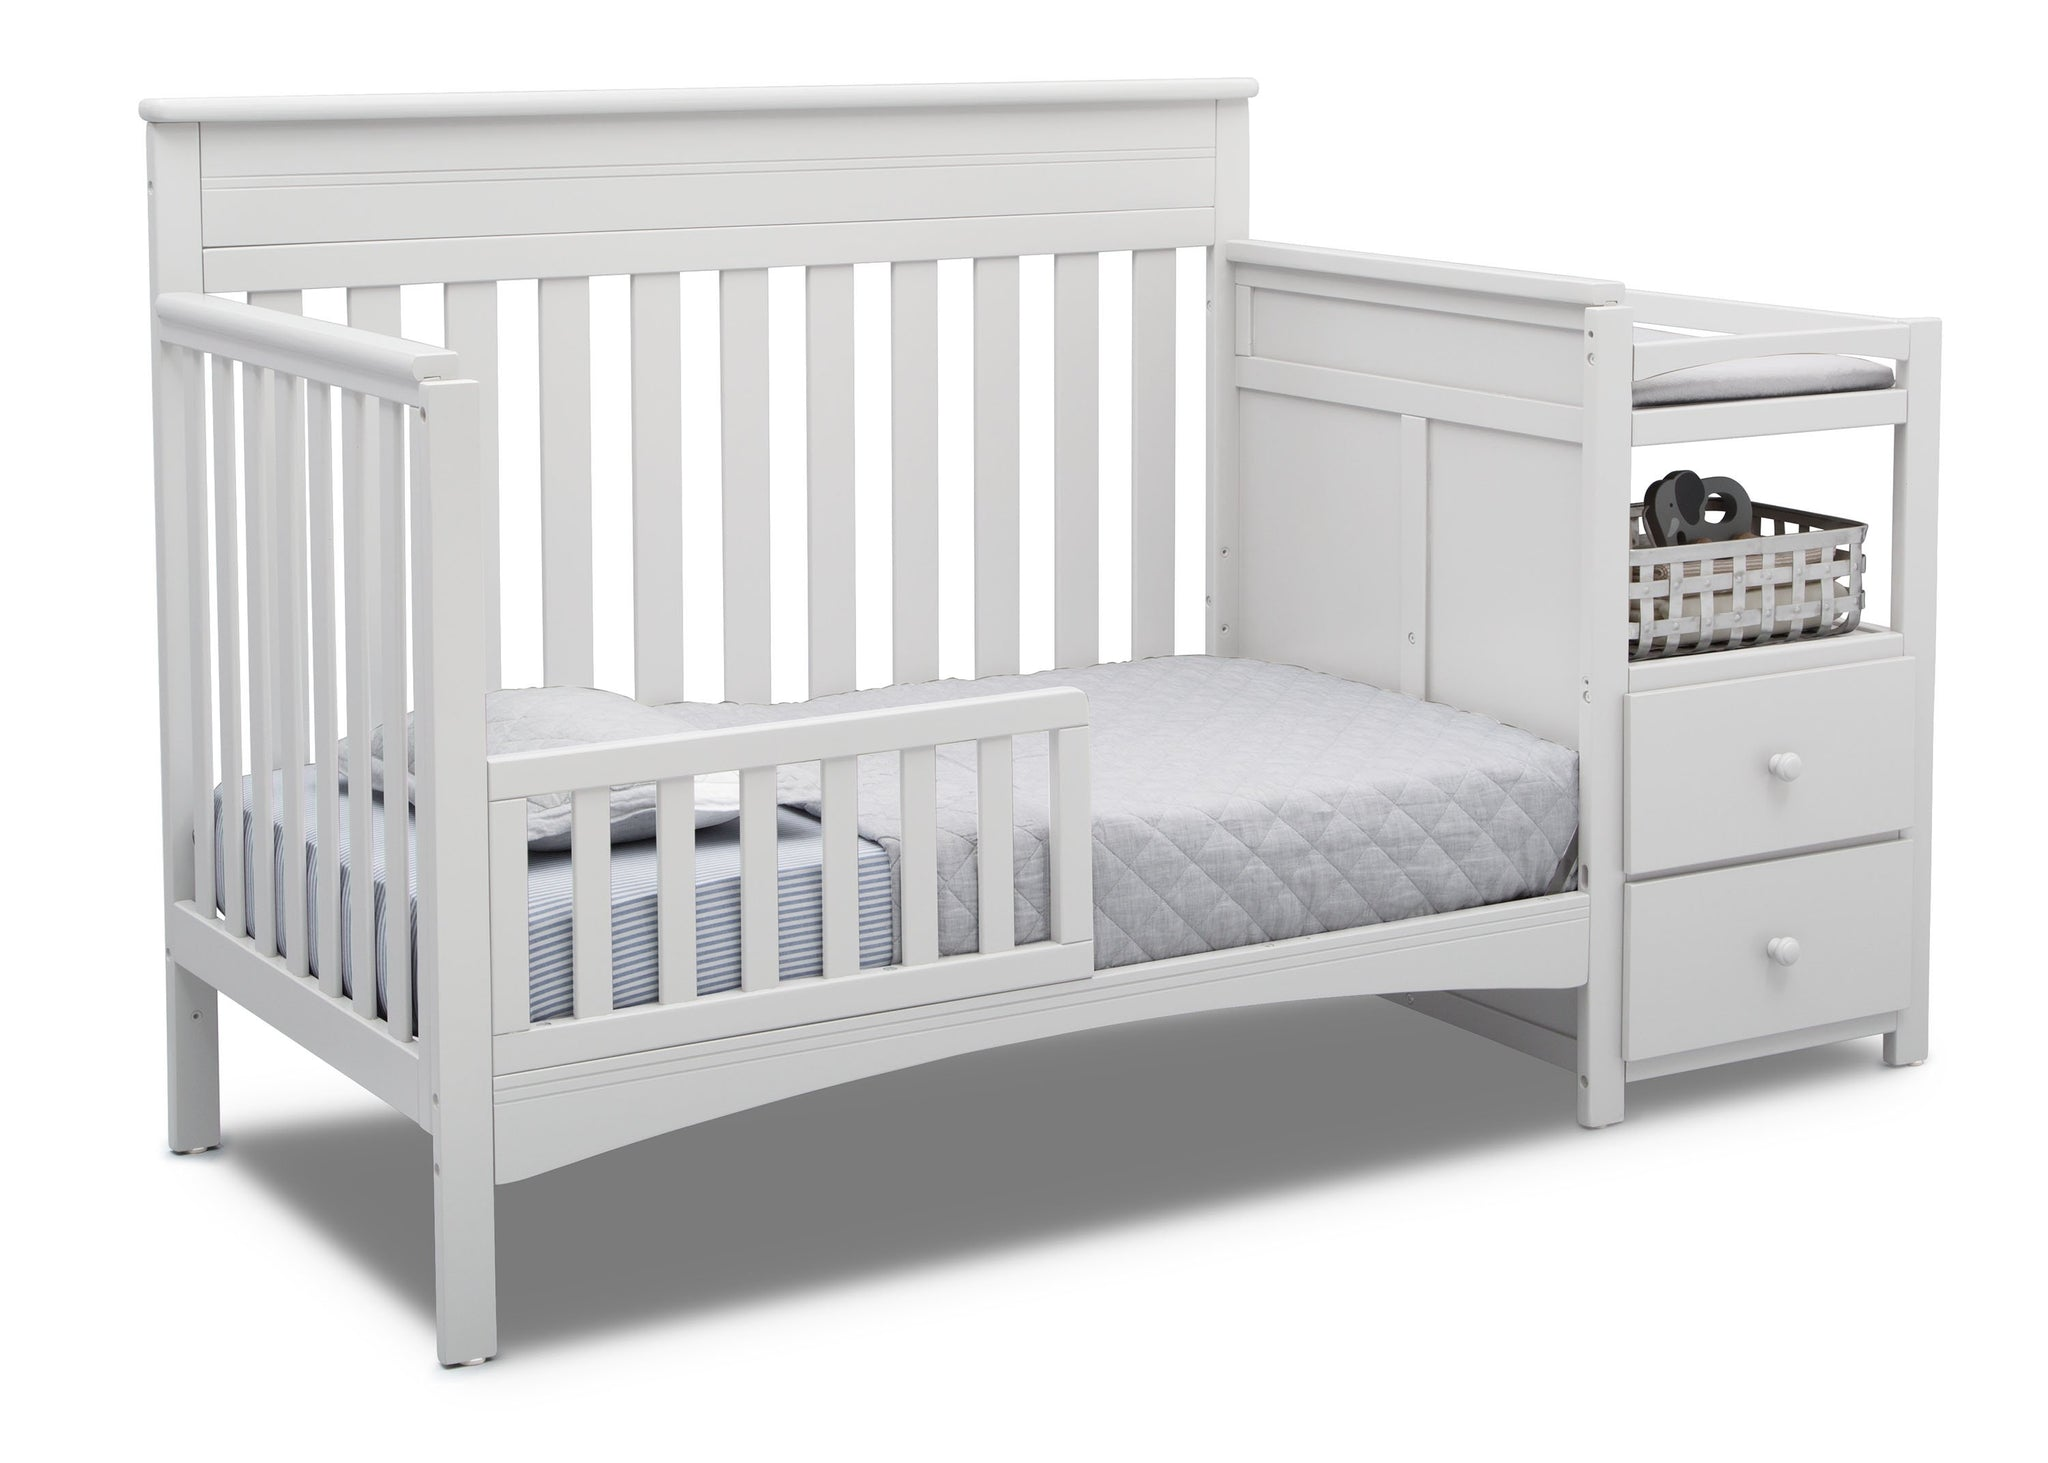 Delta Children Bianca White (130) Presley Convertible Crib N Changer (530260), Toddler Bed, b4b